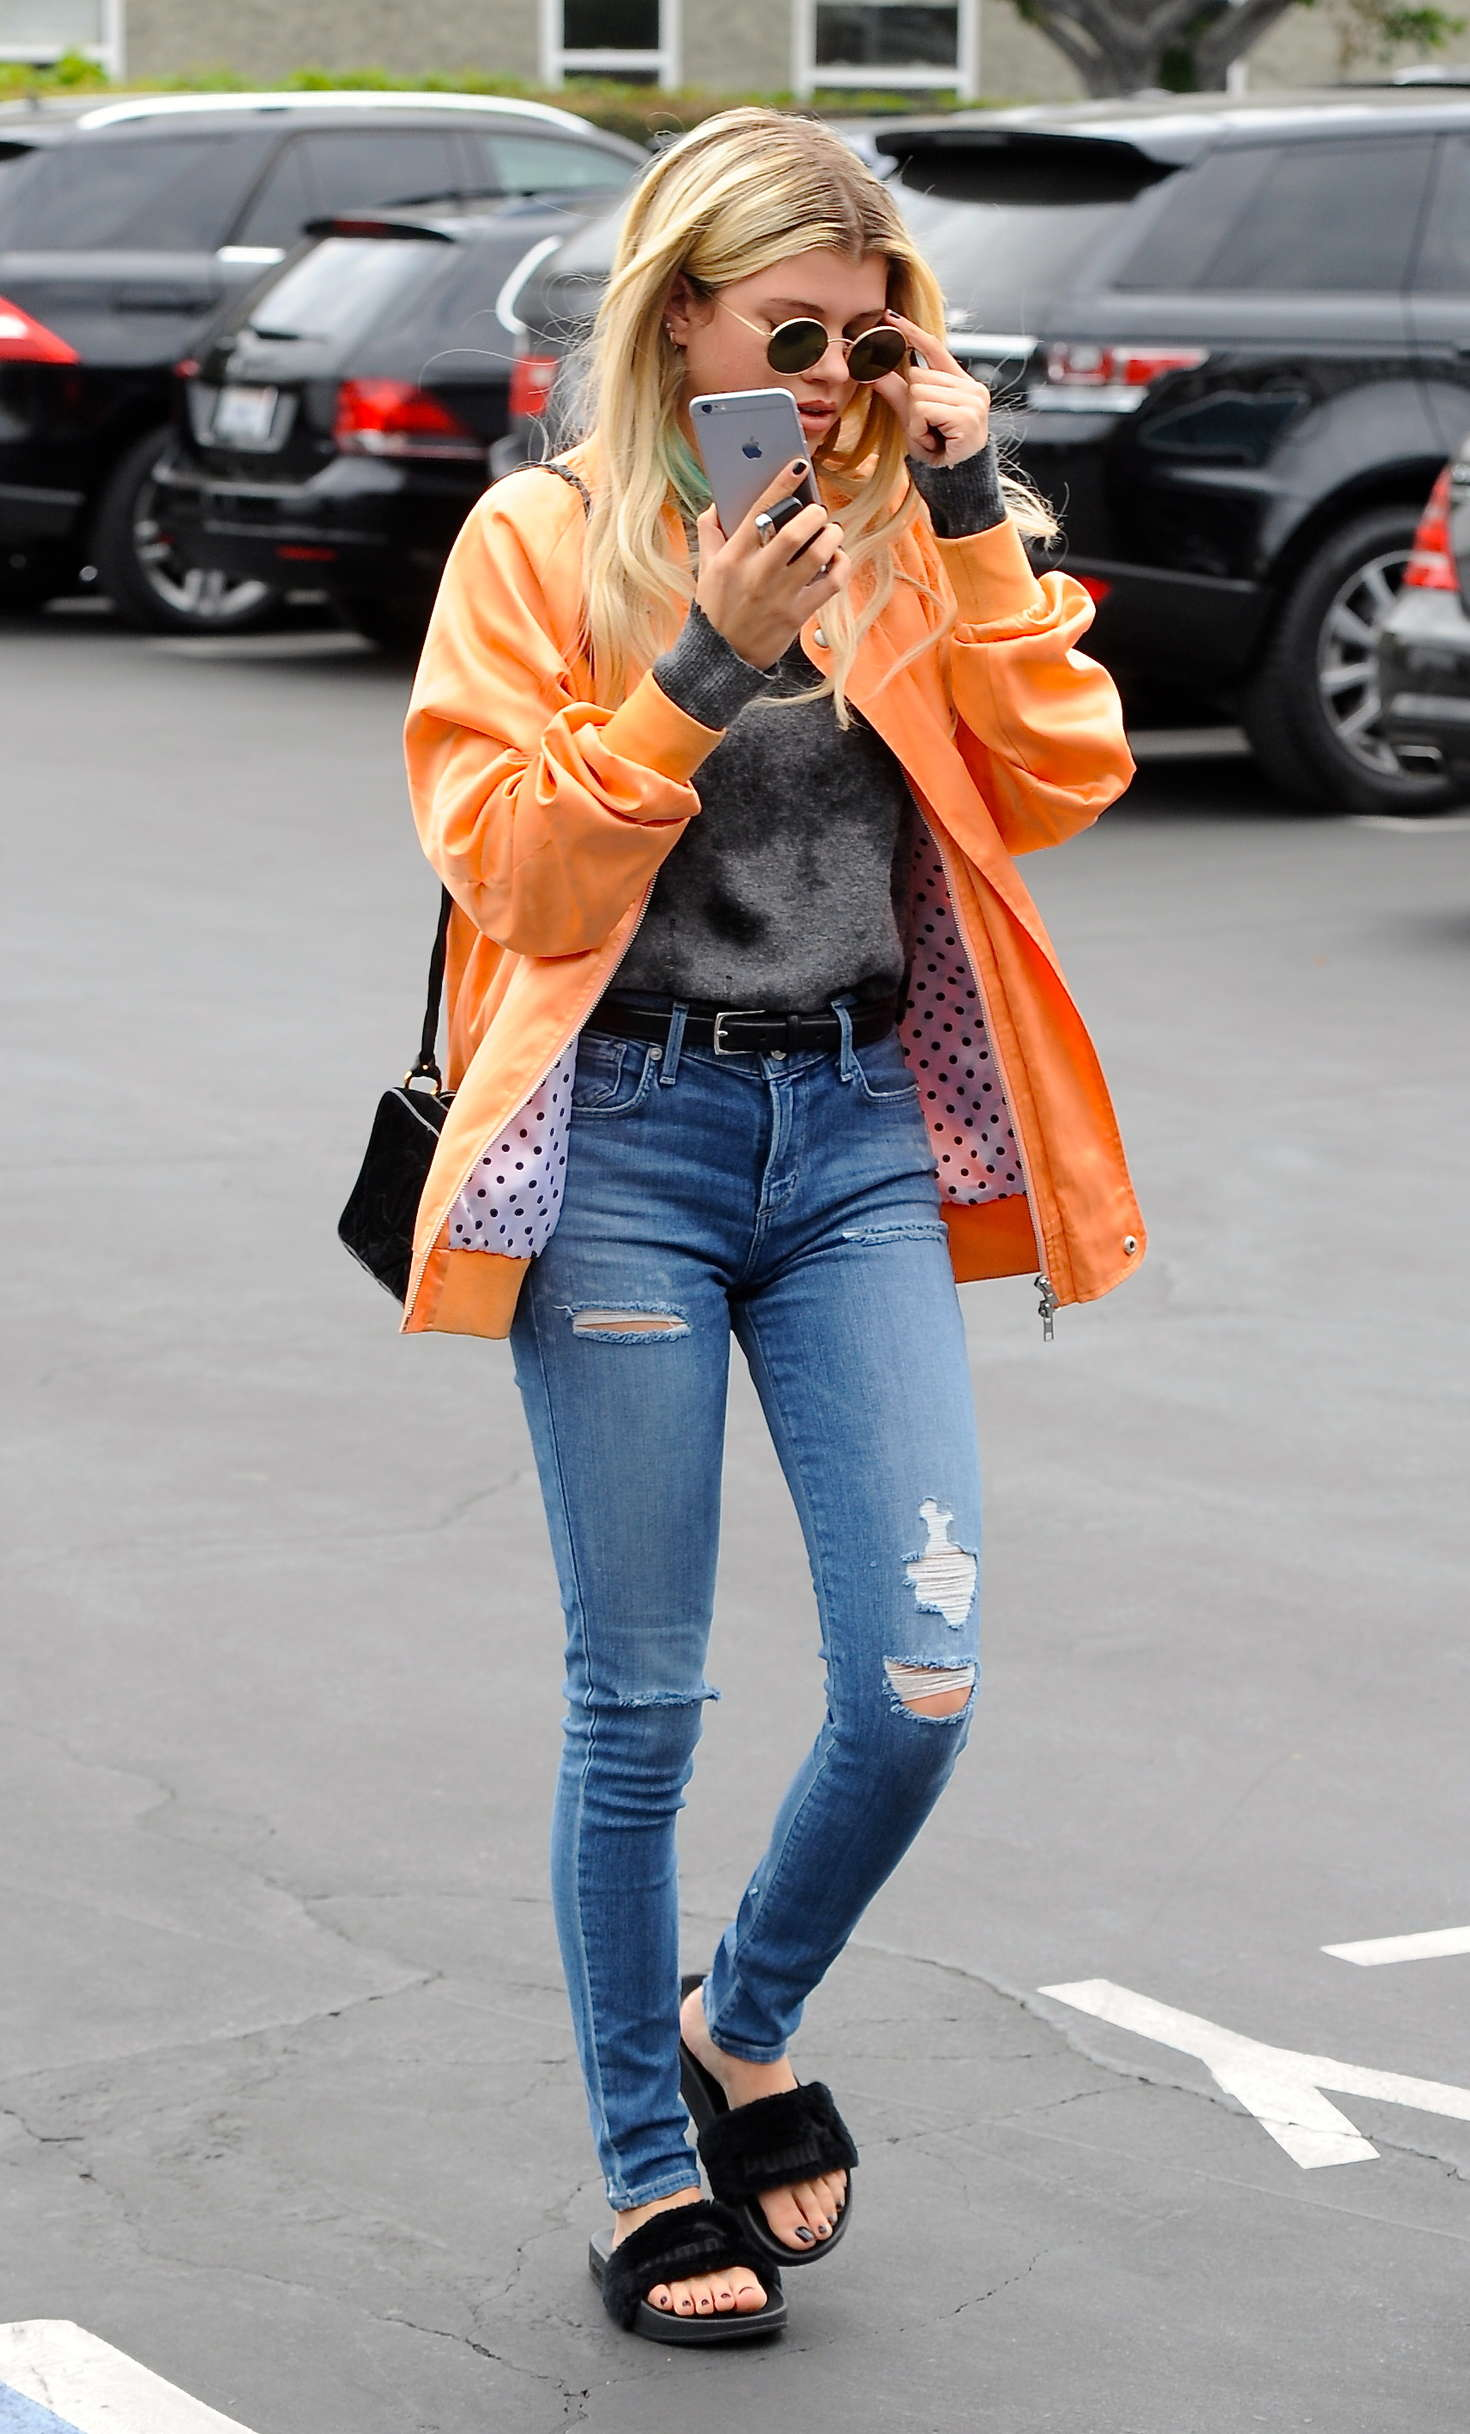 Sofia Richie in Tight Jeans at Fred Segal in West Hollywood